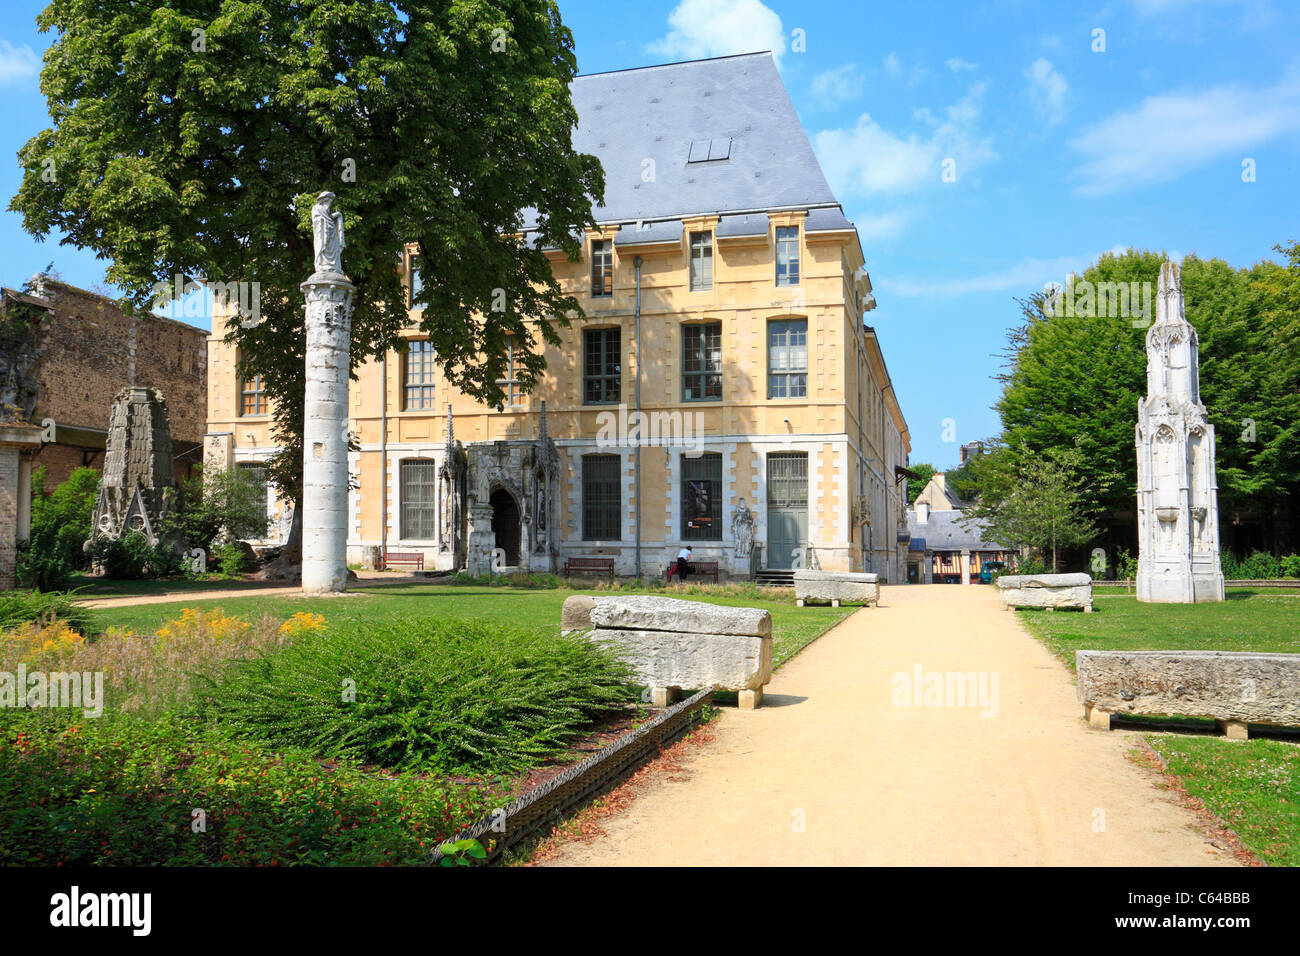 Museum of Natural History, Rouen, Normandy, France. - Stock Image